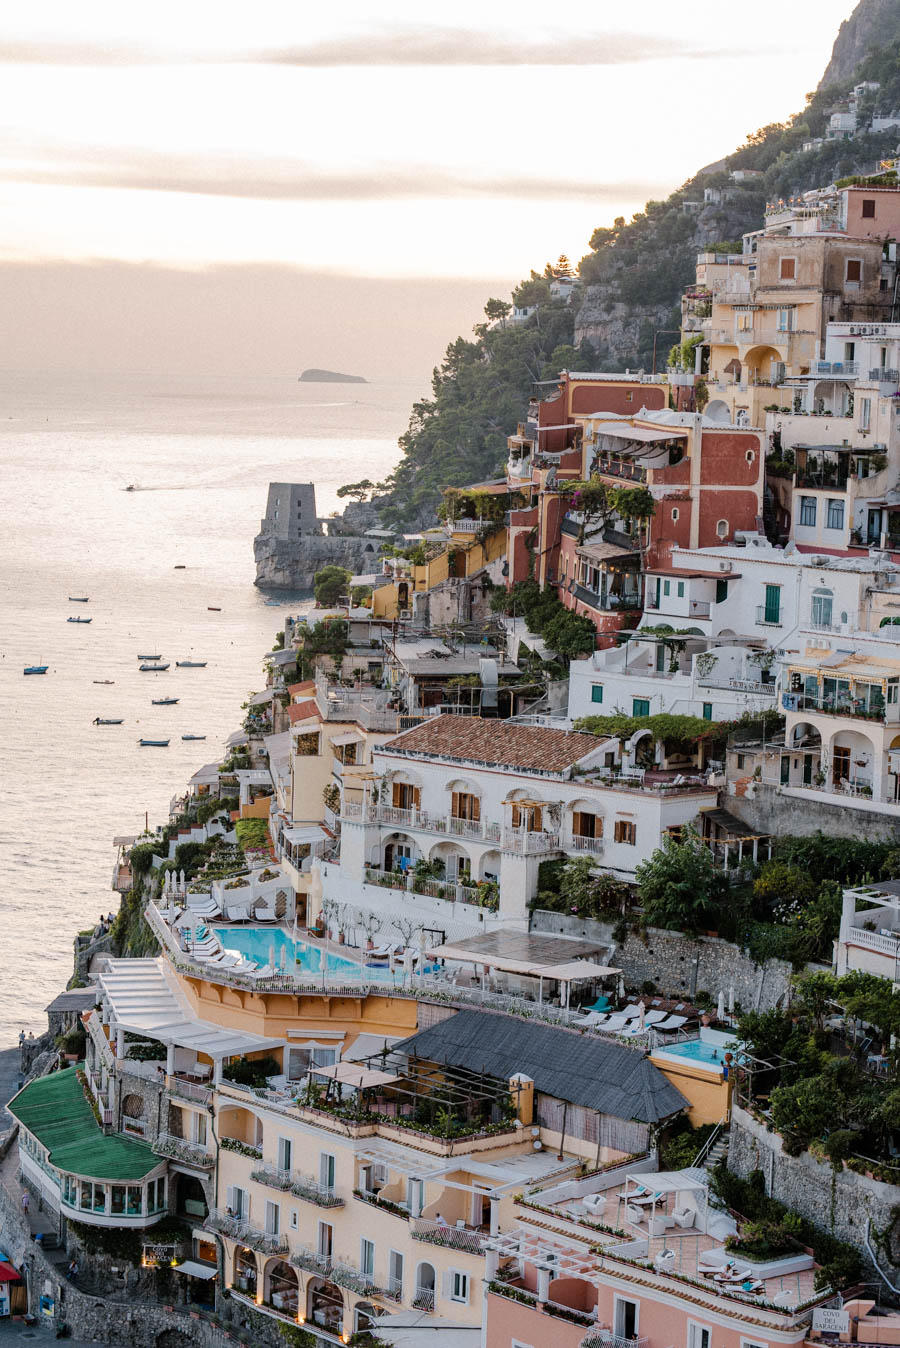 Find out where to take the best photos in Positano. Positano is one of the pretties towns on the Amalfi Coast